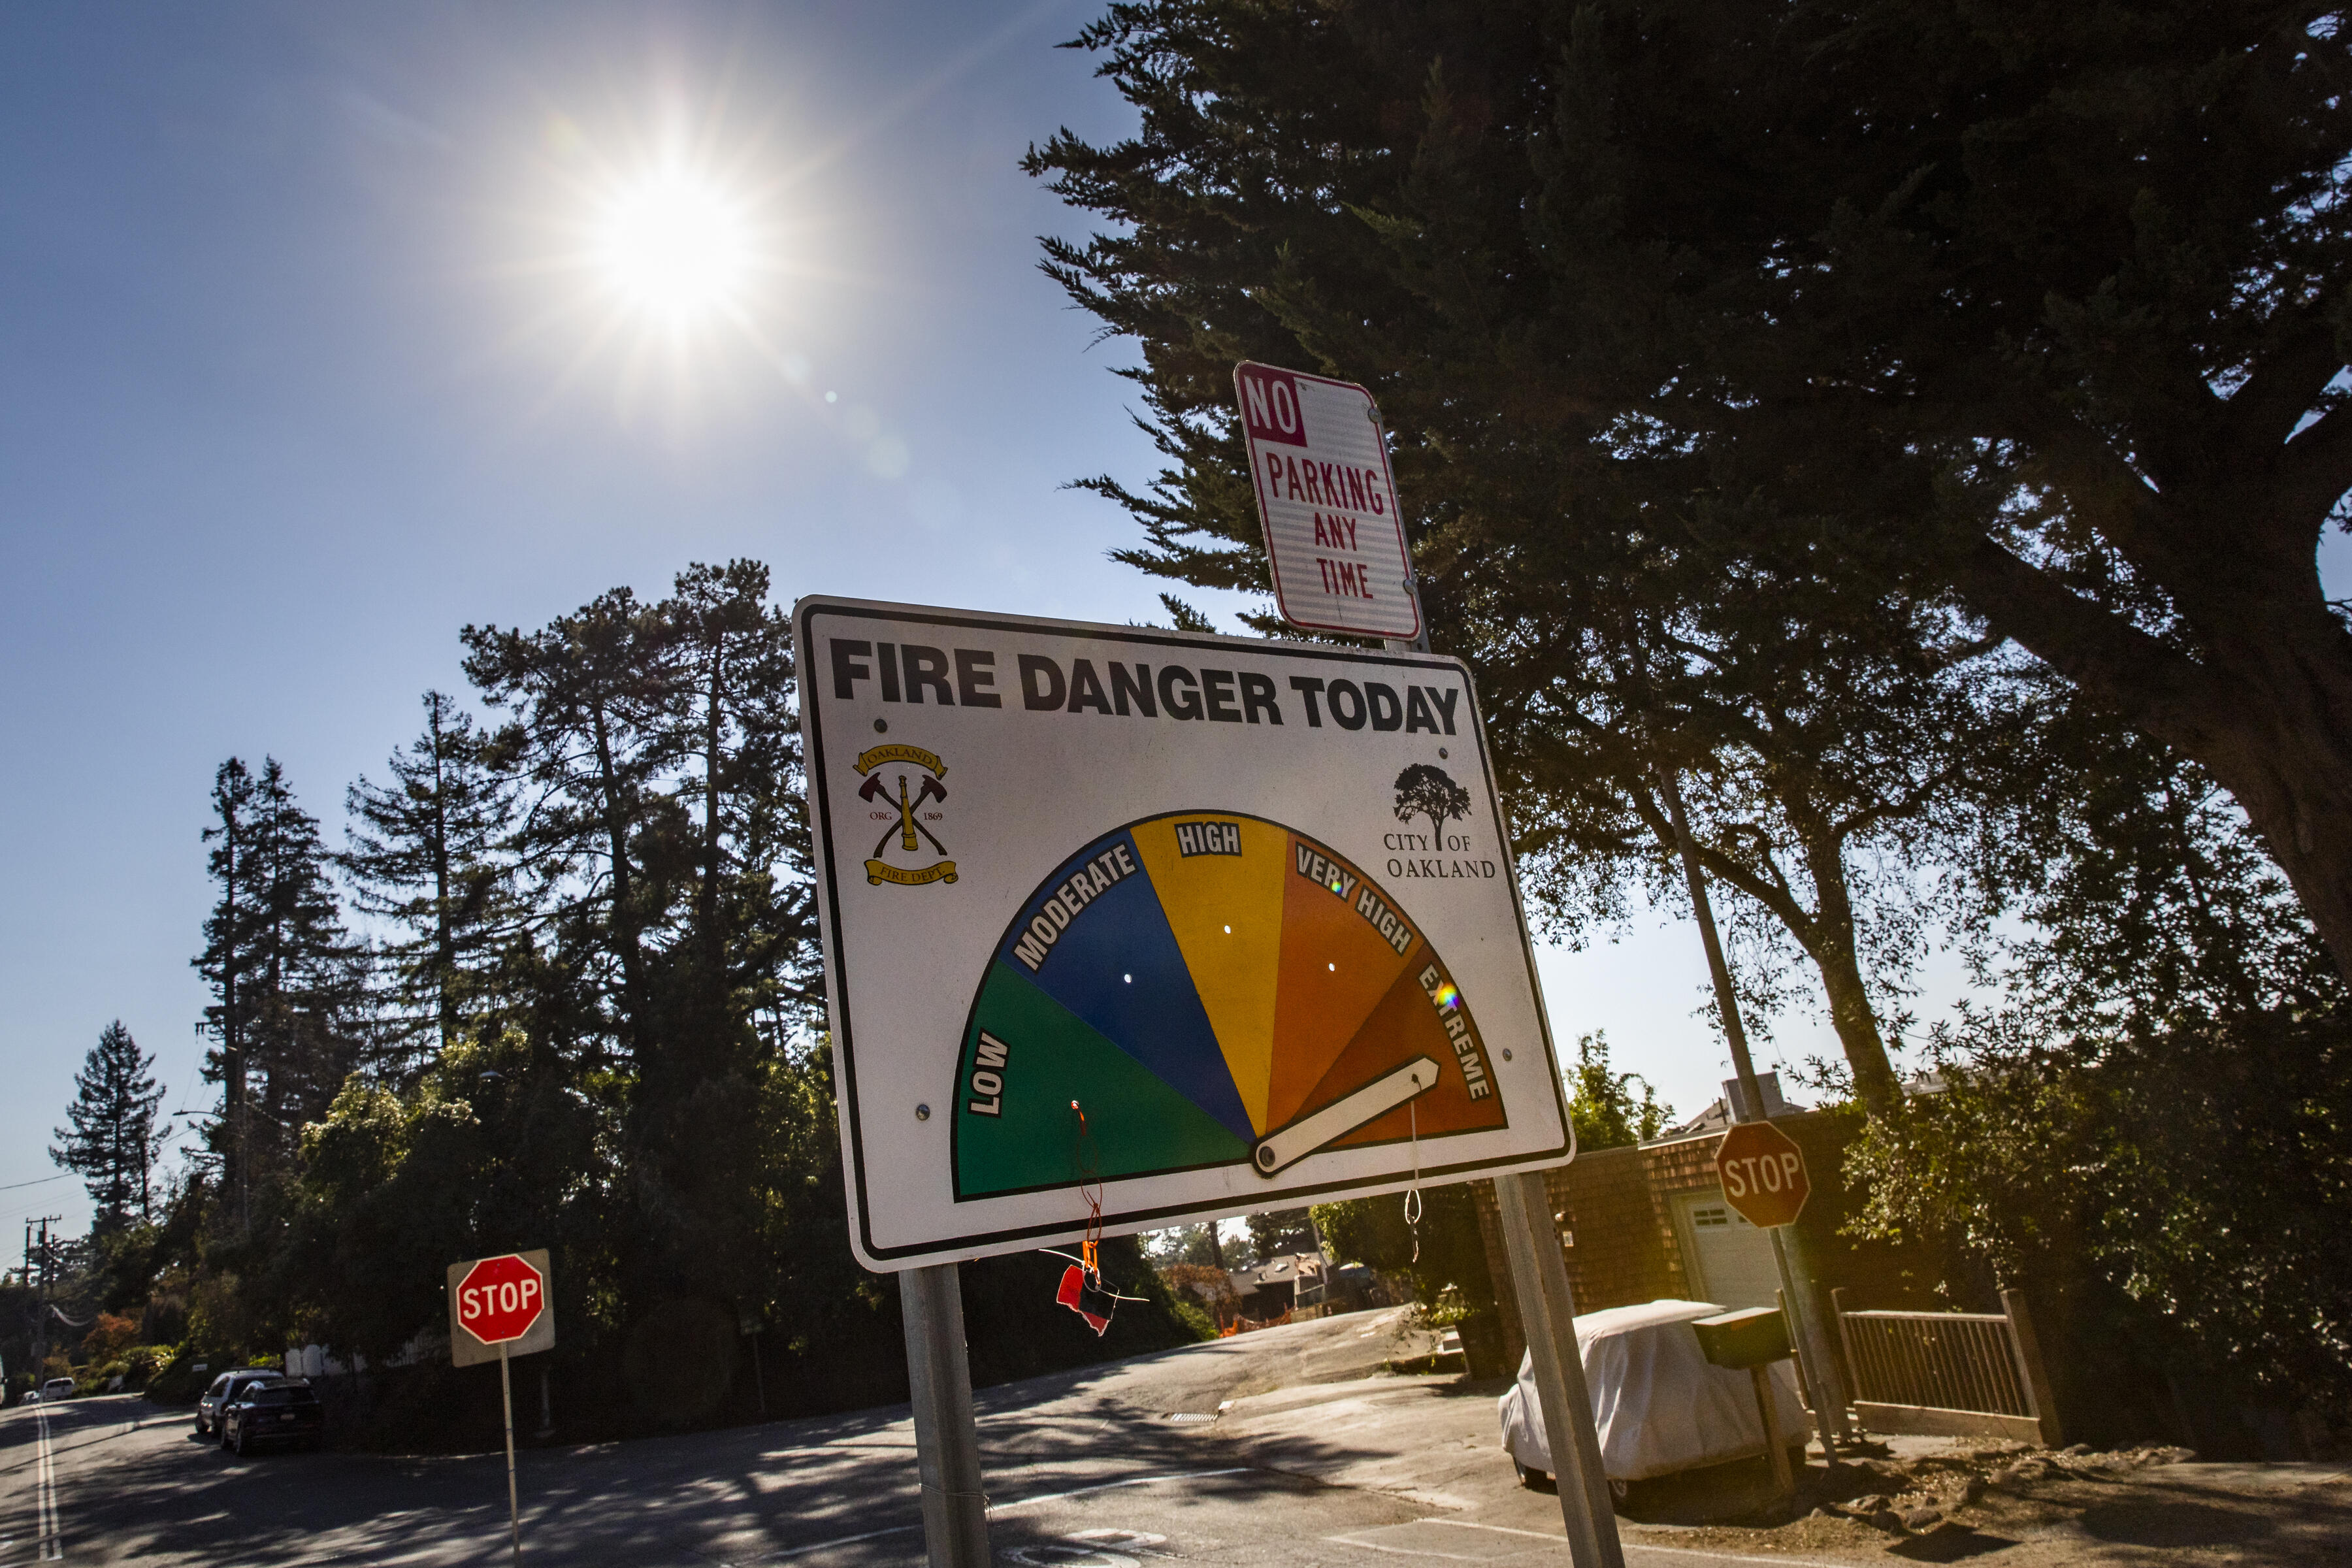 fire-danger-sign2-getty-images